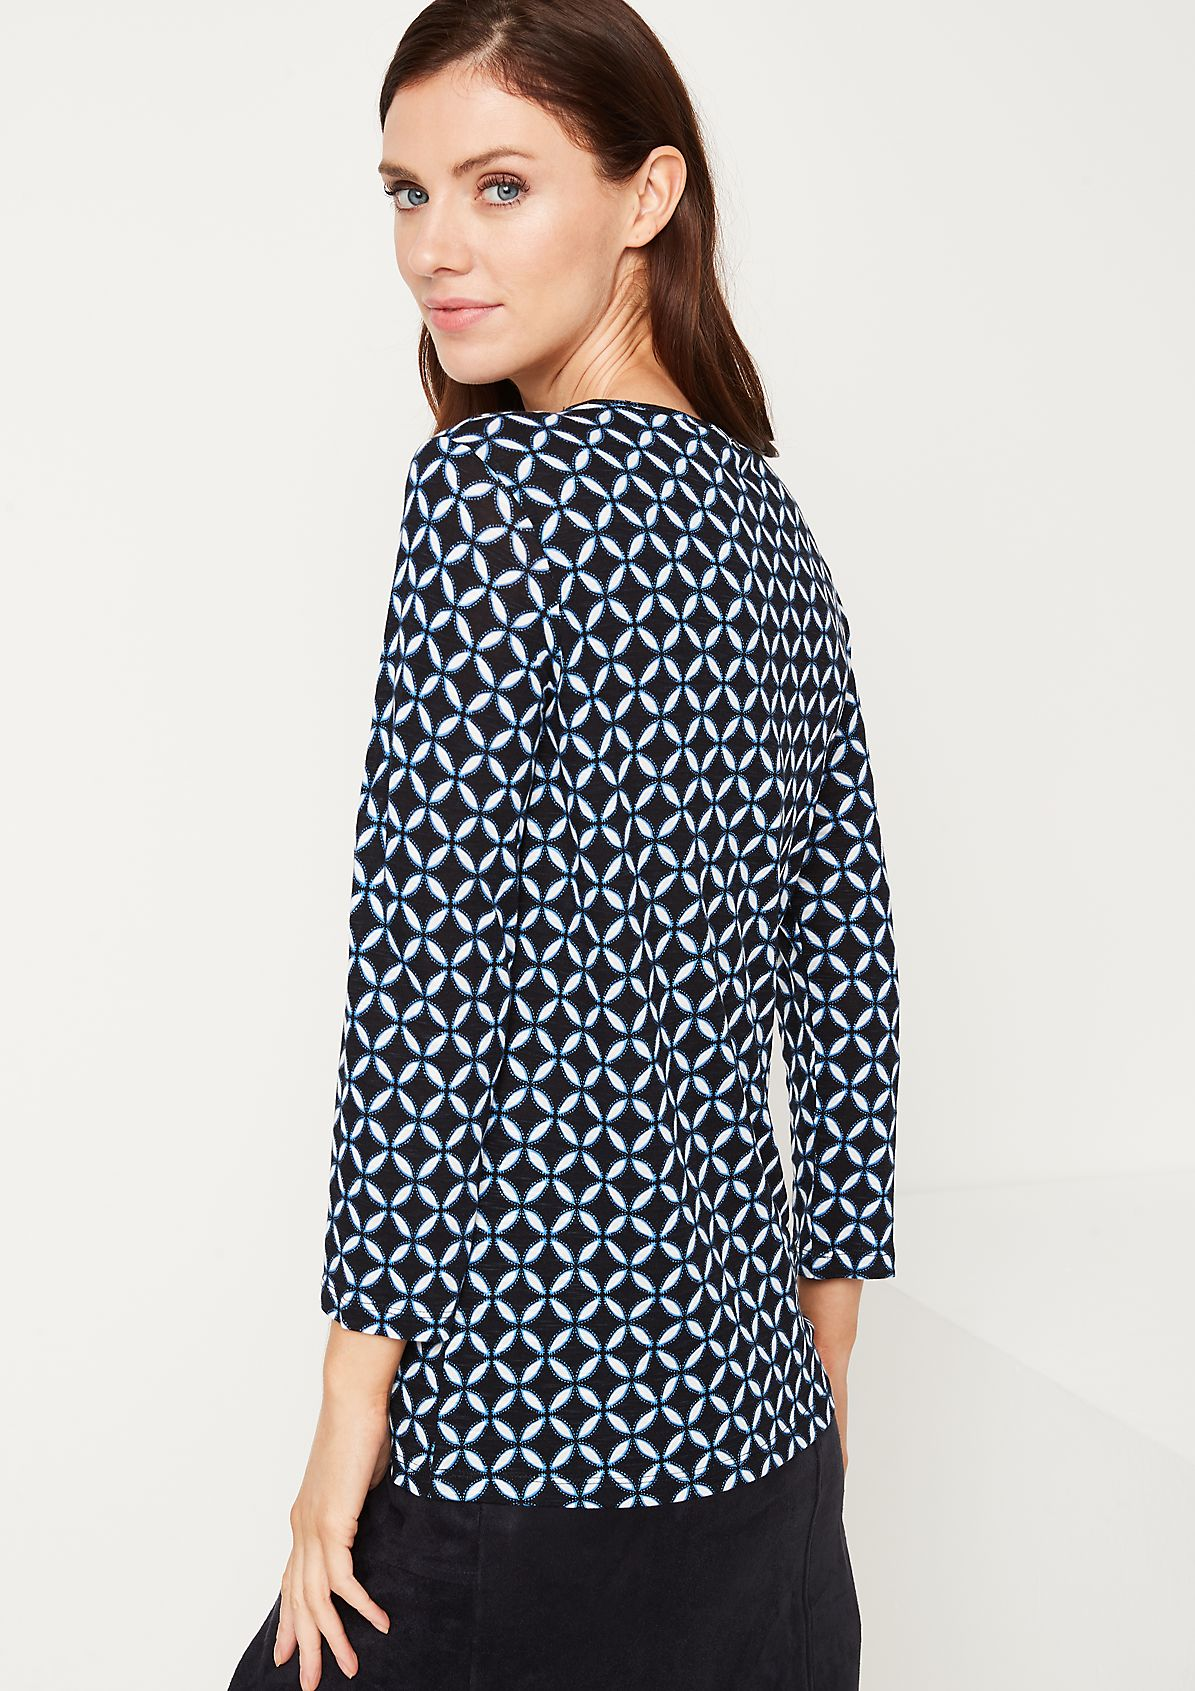 3/4-sleeve top with a graphic pattern from comma